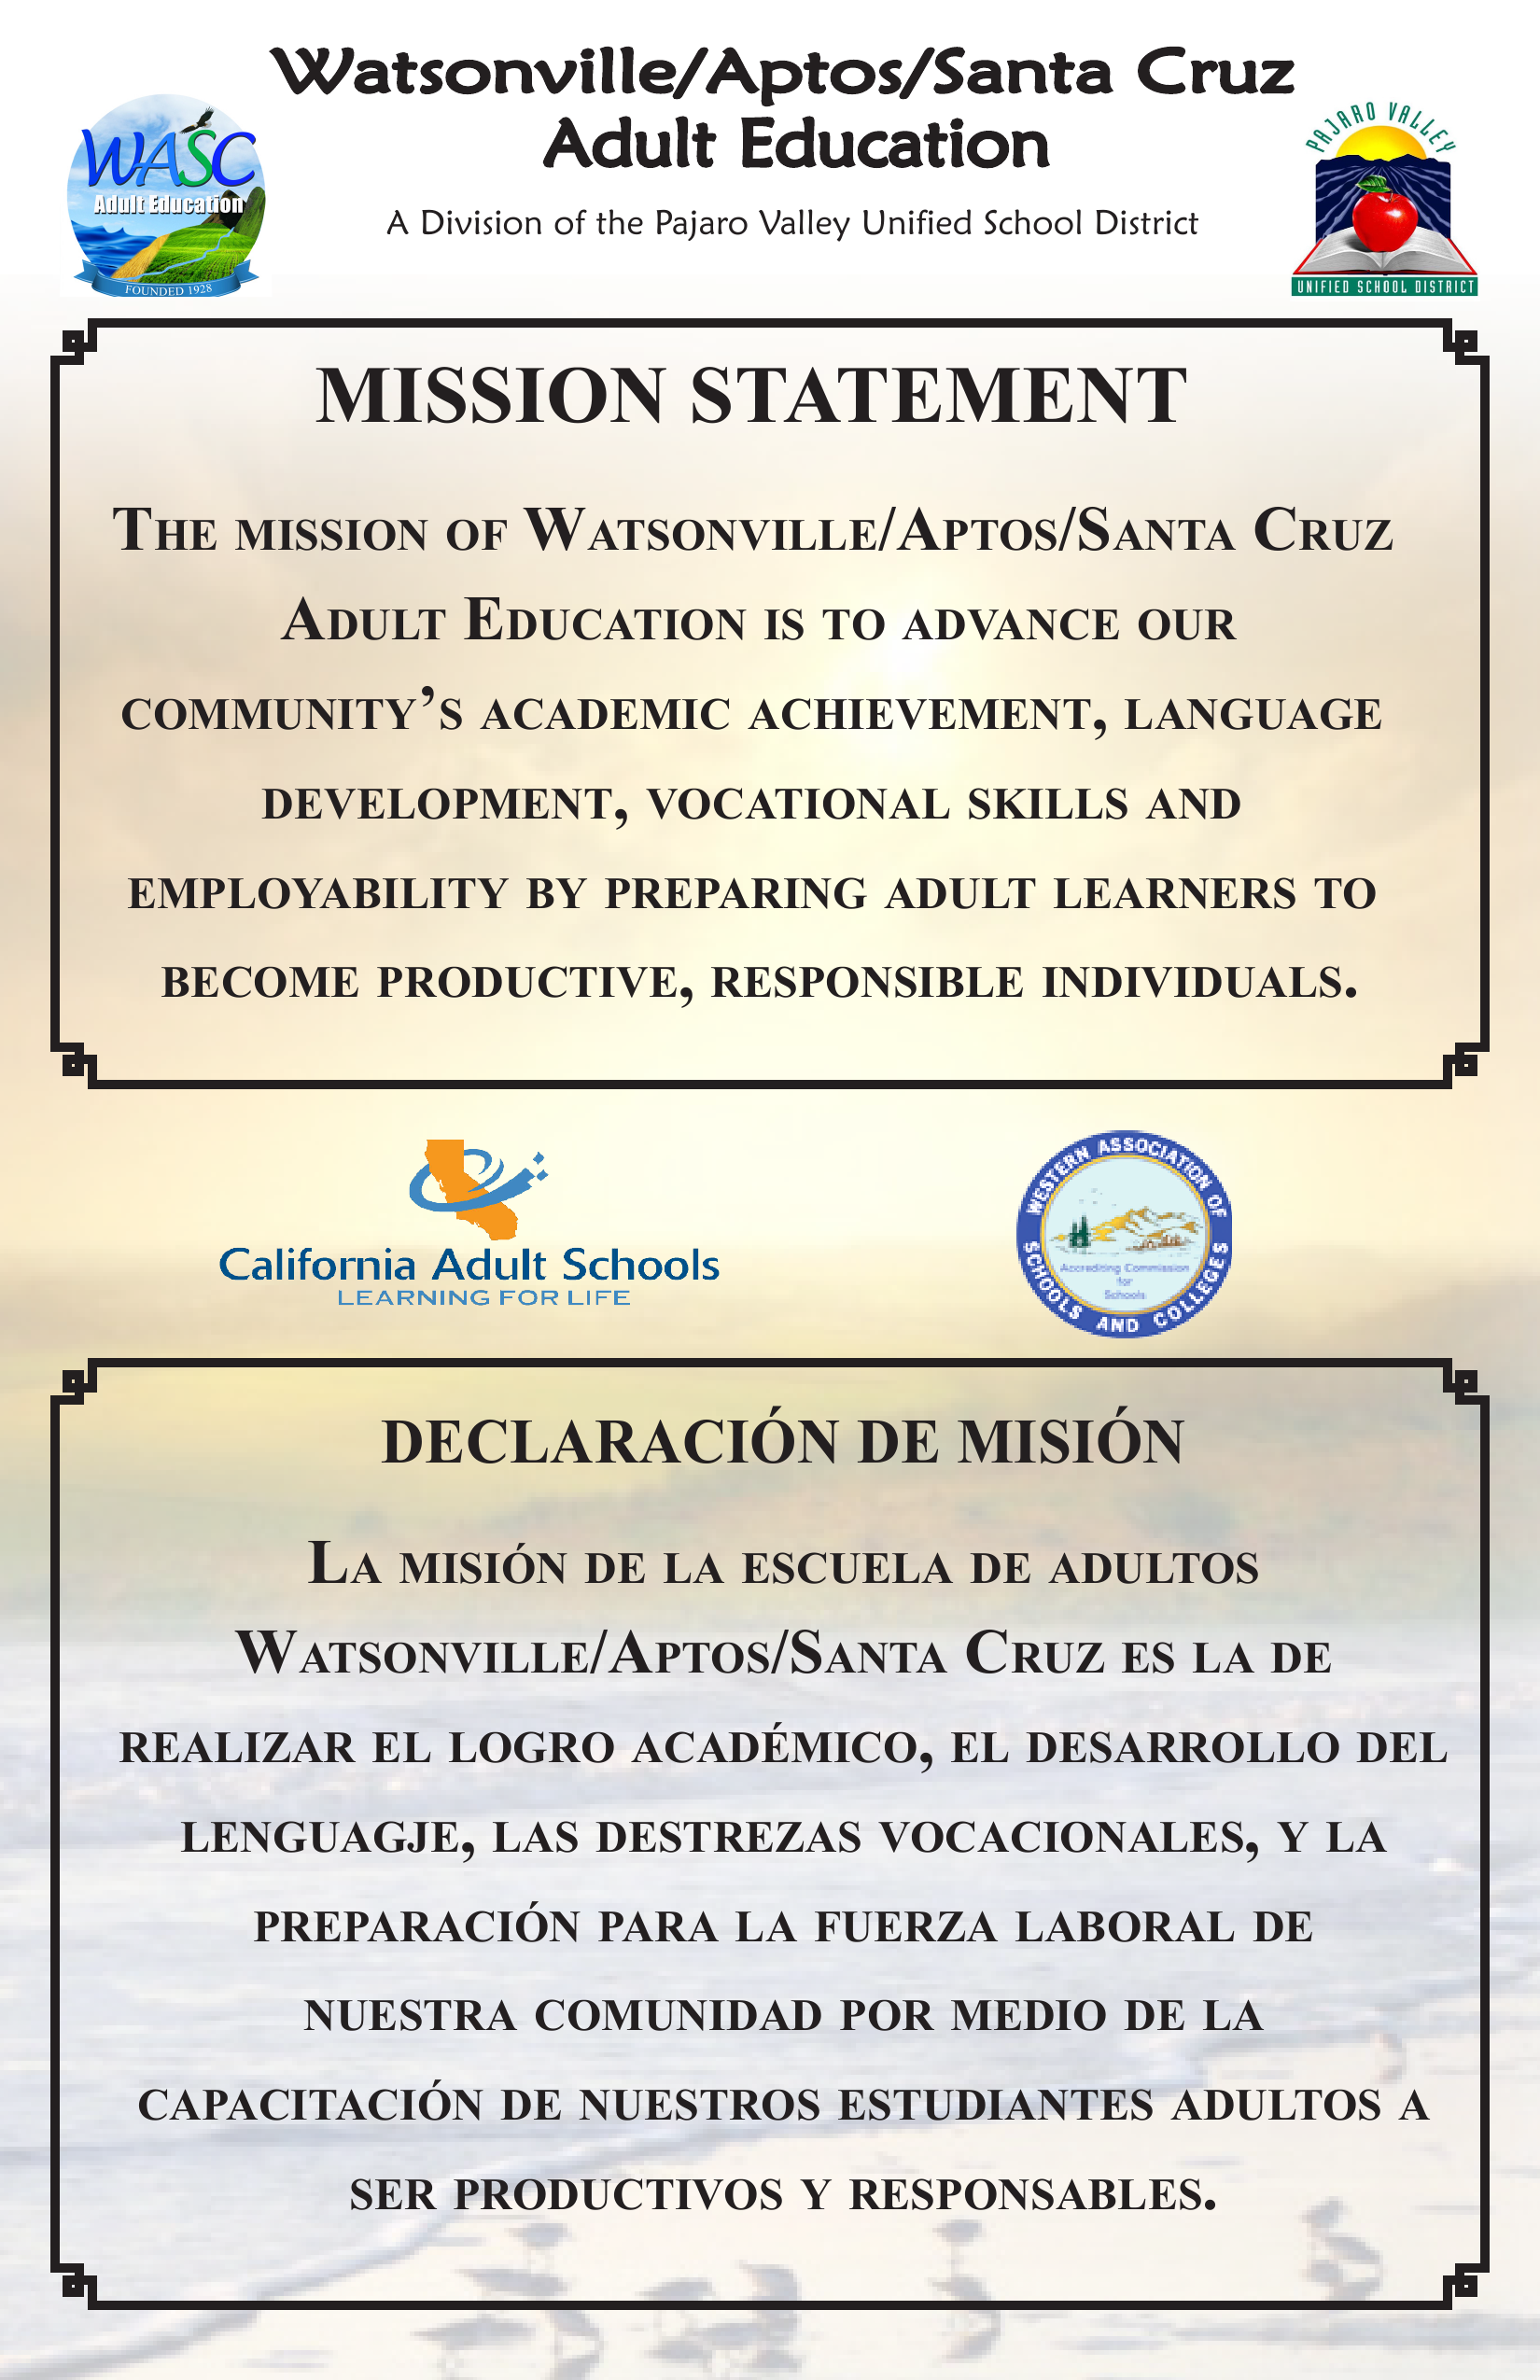 WASC Mission Statement